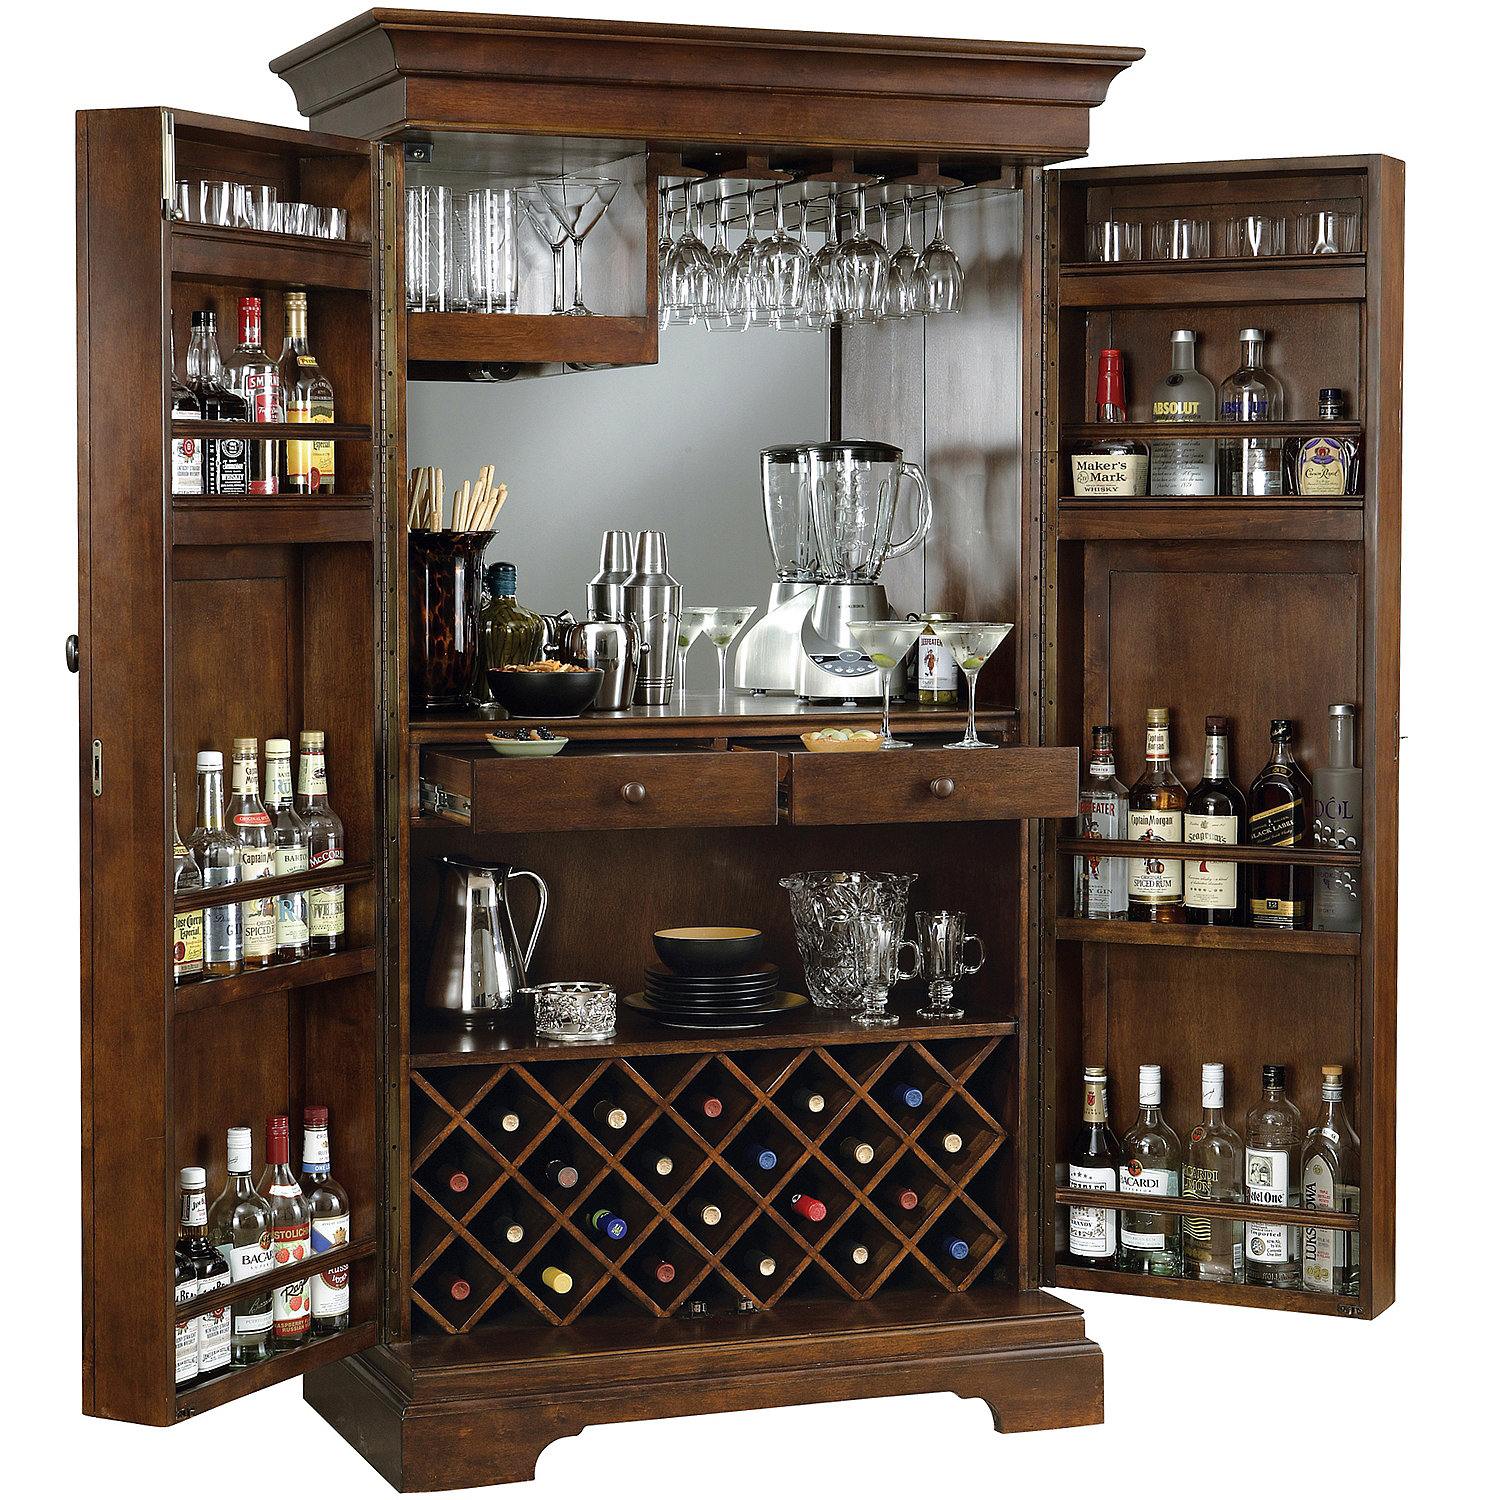 New Howard Miller Sonoma Armoire Wine Cabinet - Wine Enthusiast PY82